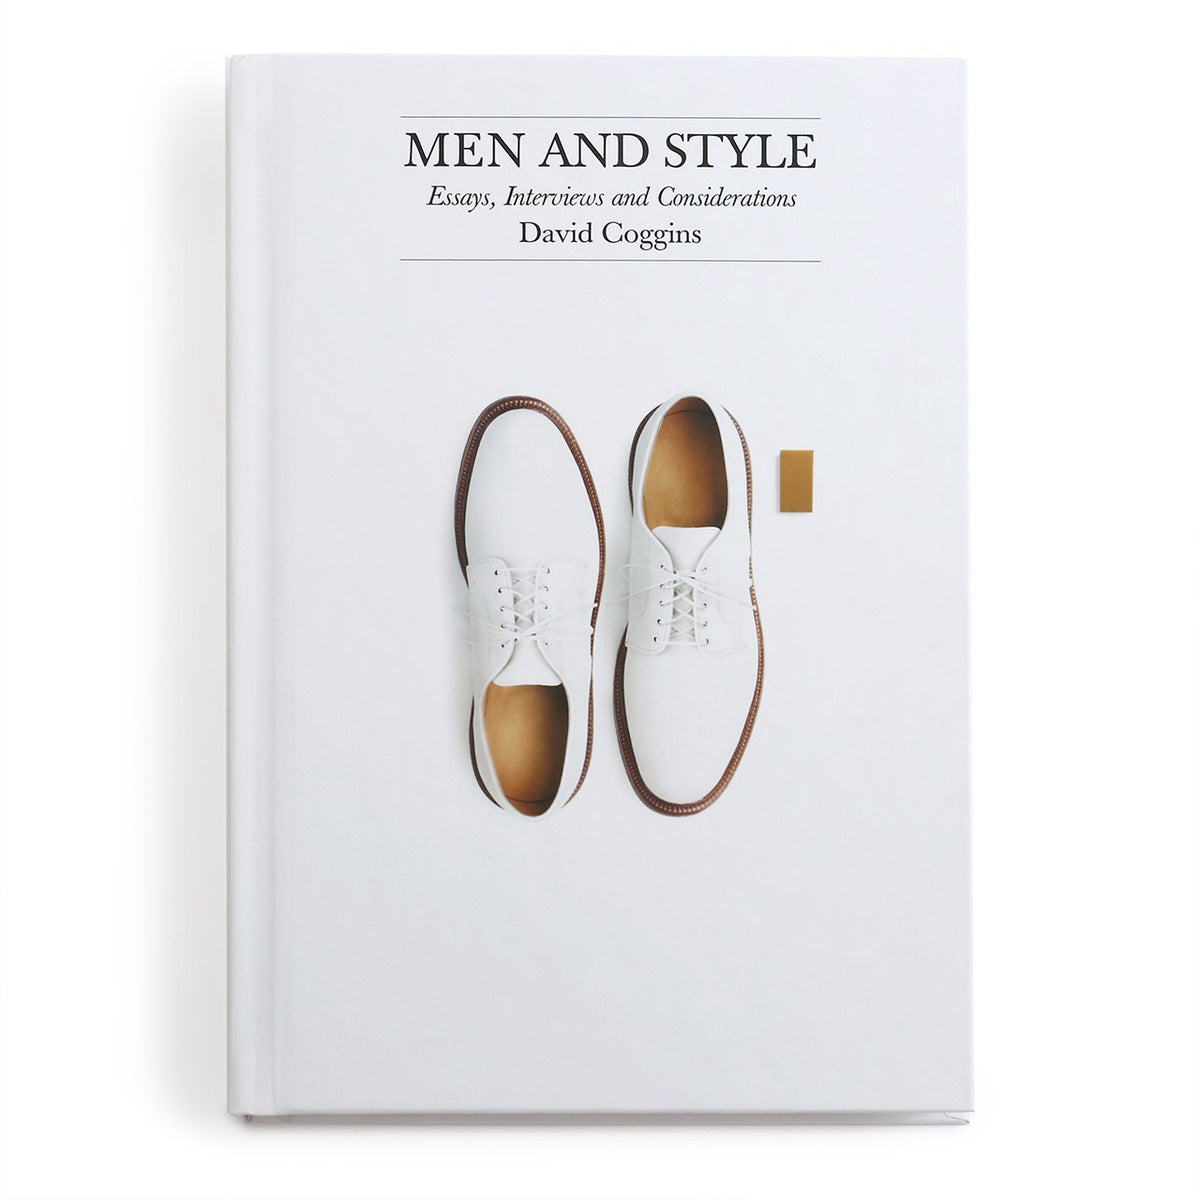 Men and Style: Essays, Interviews and Considerations by David Coggins